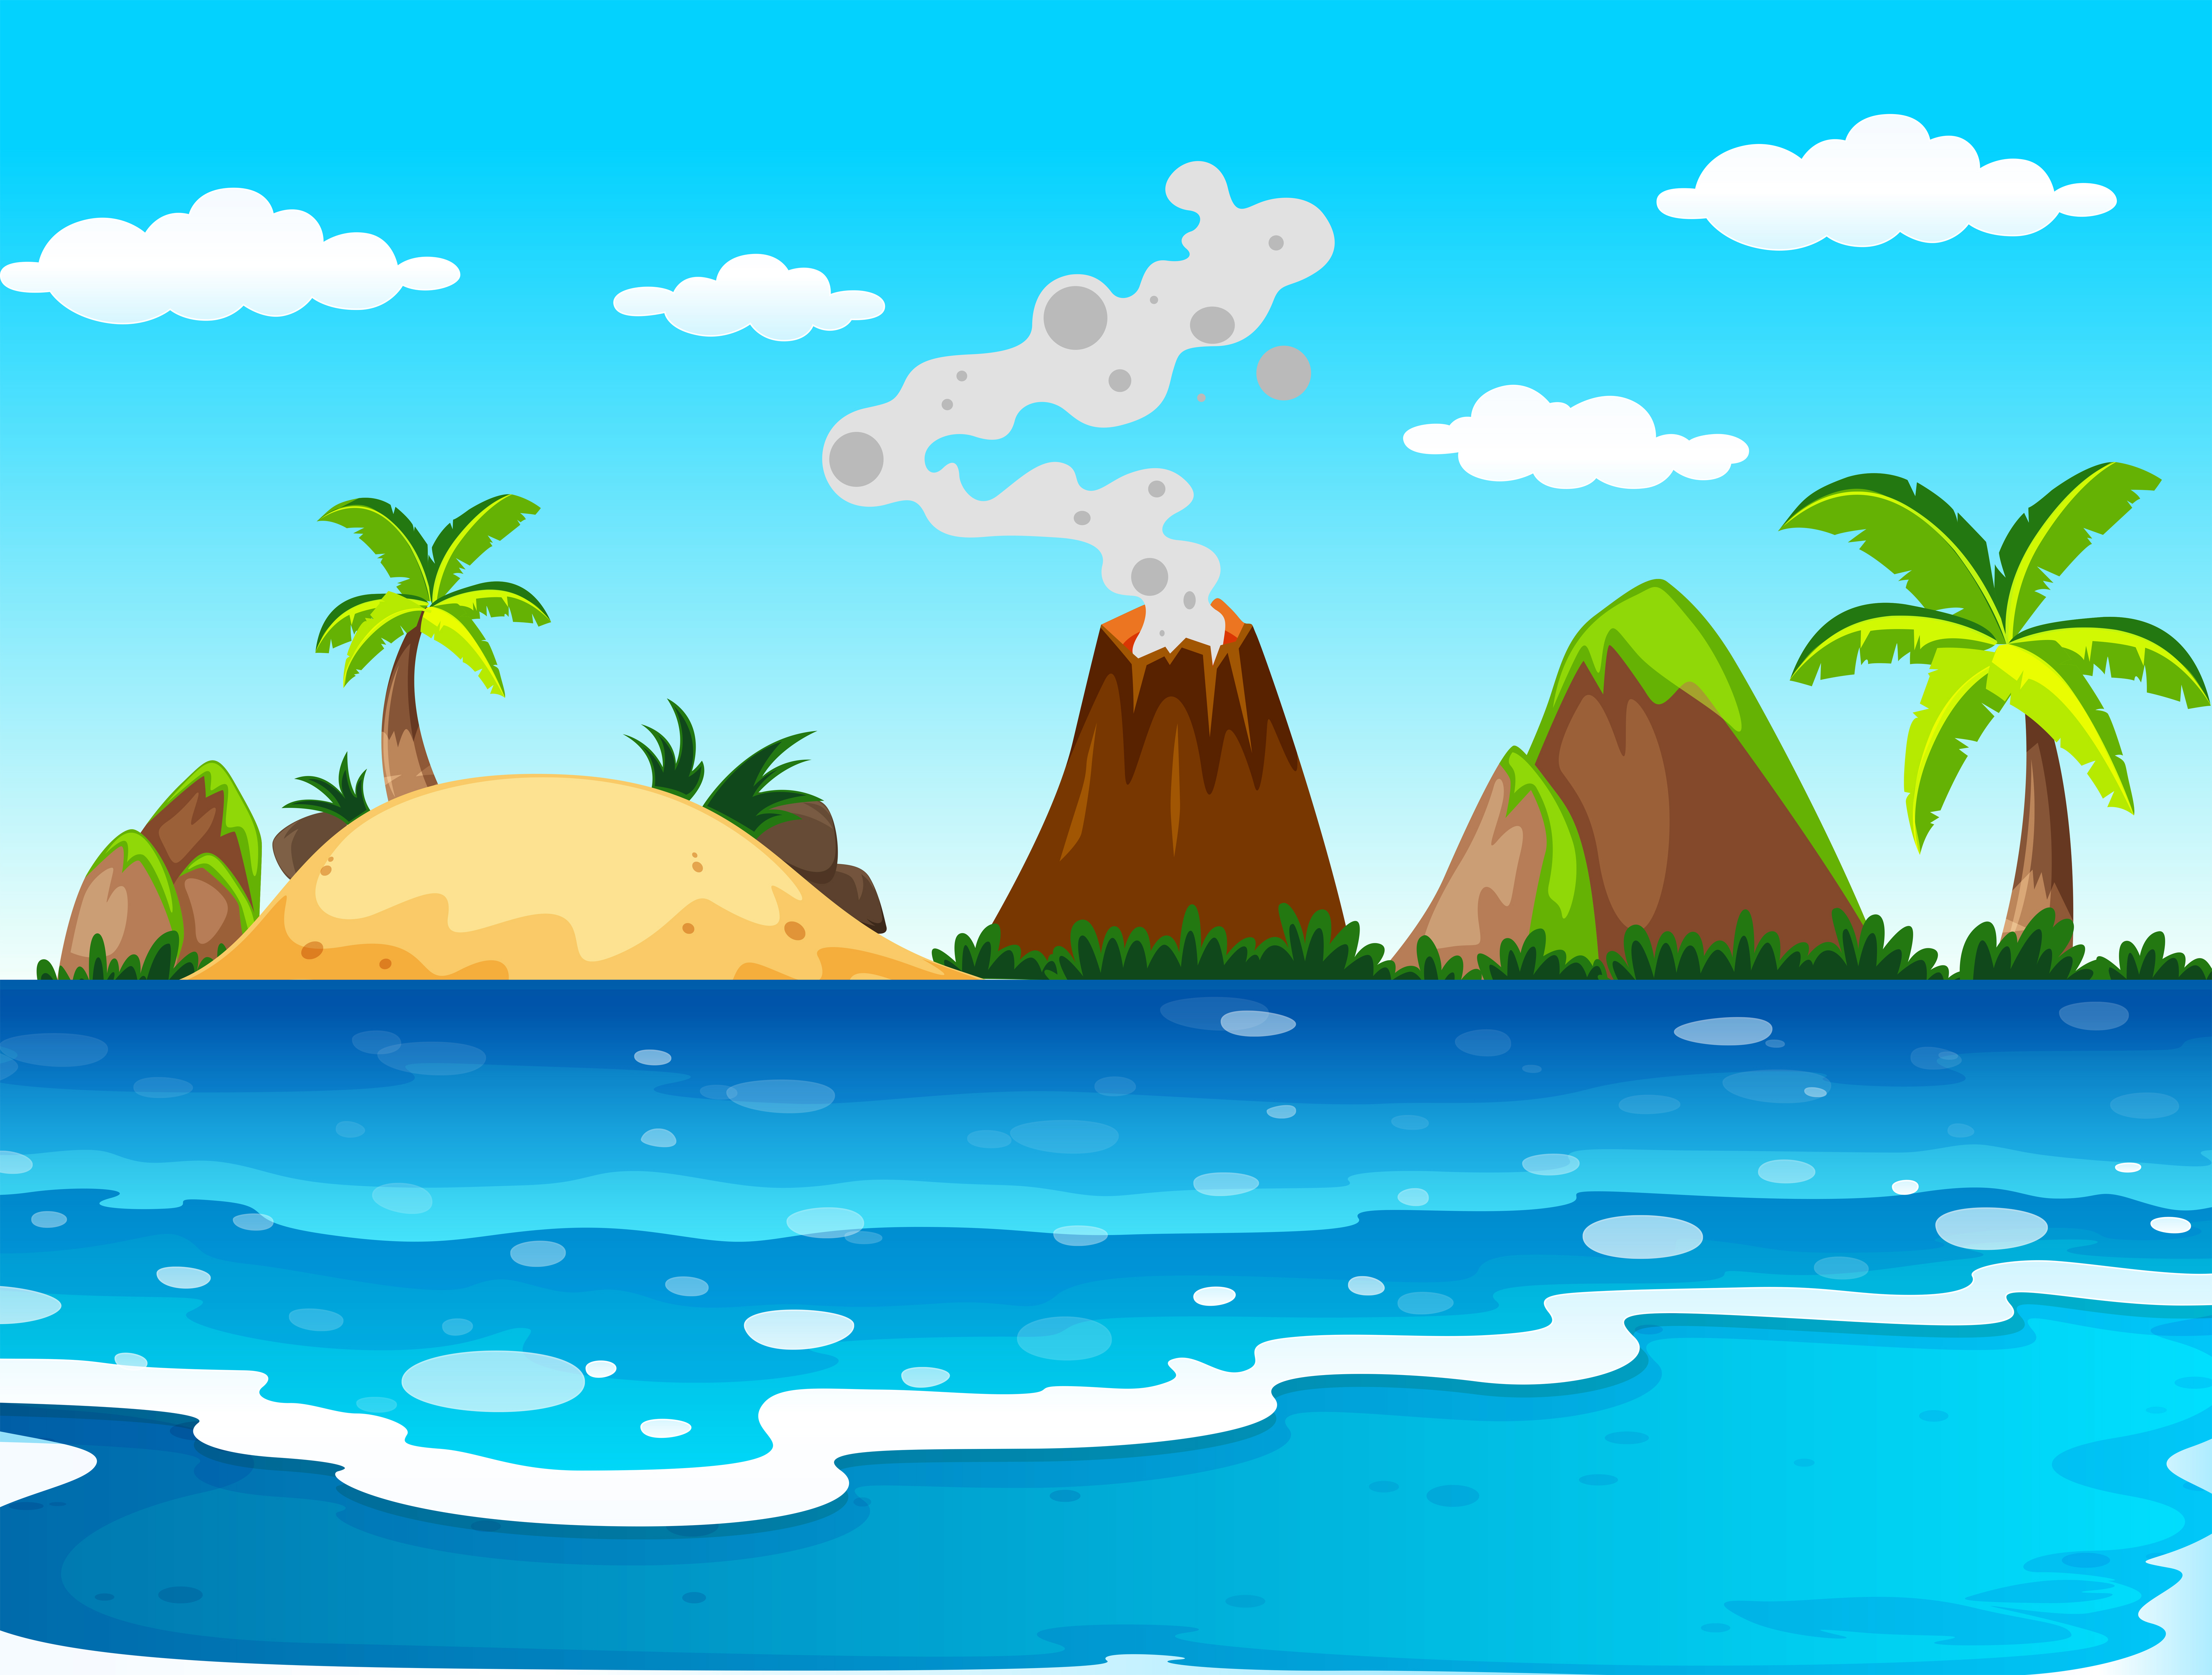 Ocean Scene With Volcano And Island Download Free